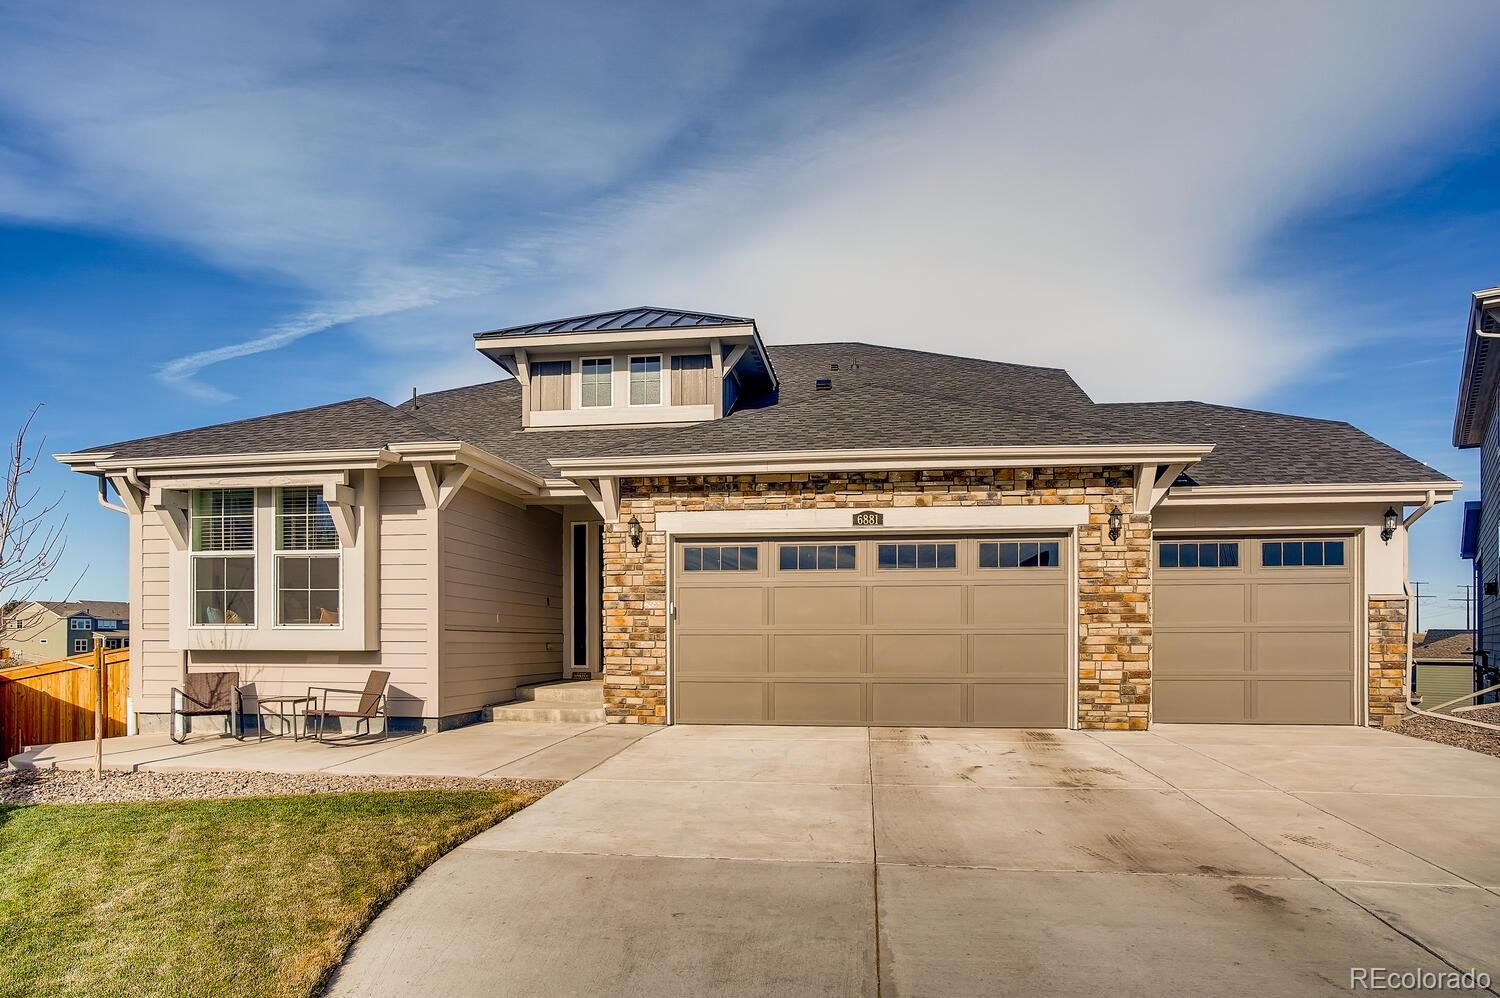 Why wait for new when this stunning home is available NOW?!  This gorgeous Graham ranch plan  is located on a cul-de-sac in highly sought after Castle Pines and features 3 beds, 2 baths, great room, kitchen, mud room, walkout basement and 3 car garage.  Meticulously maintained - pride of ownership shines throughout. Beautiful finishes and upgrades including Engineered hardwood floor (Greenbriar - Marrone), slab granite counters in the kitchen and master bath, window blinds, Ring video doorbell and more. Finish the walkout basement for even more living space. The many windows allow the natural light to cascade in keeping this home bright and cheerful.  The energy efficient furnace, central air conditioning and gas fireplace keep this home comfortable all year long. Perfect and move in ready.  The open floorplan is ideal for entertaining.  Enjoy warm summer evenings from the covered deck or people watch from the front patio. No monthly HOA fees - included in property taxes.  Close to dining, shopping, entertainment and other amenities.   Easy access to Castle Pines Parkway and I-25. Don't miss your opportunity. Welcome Home!